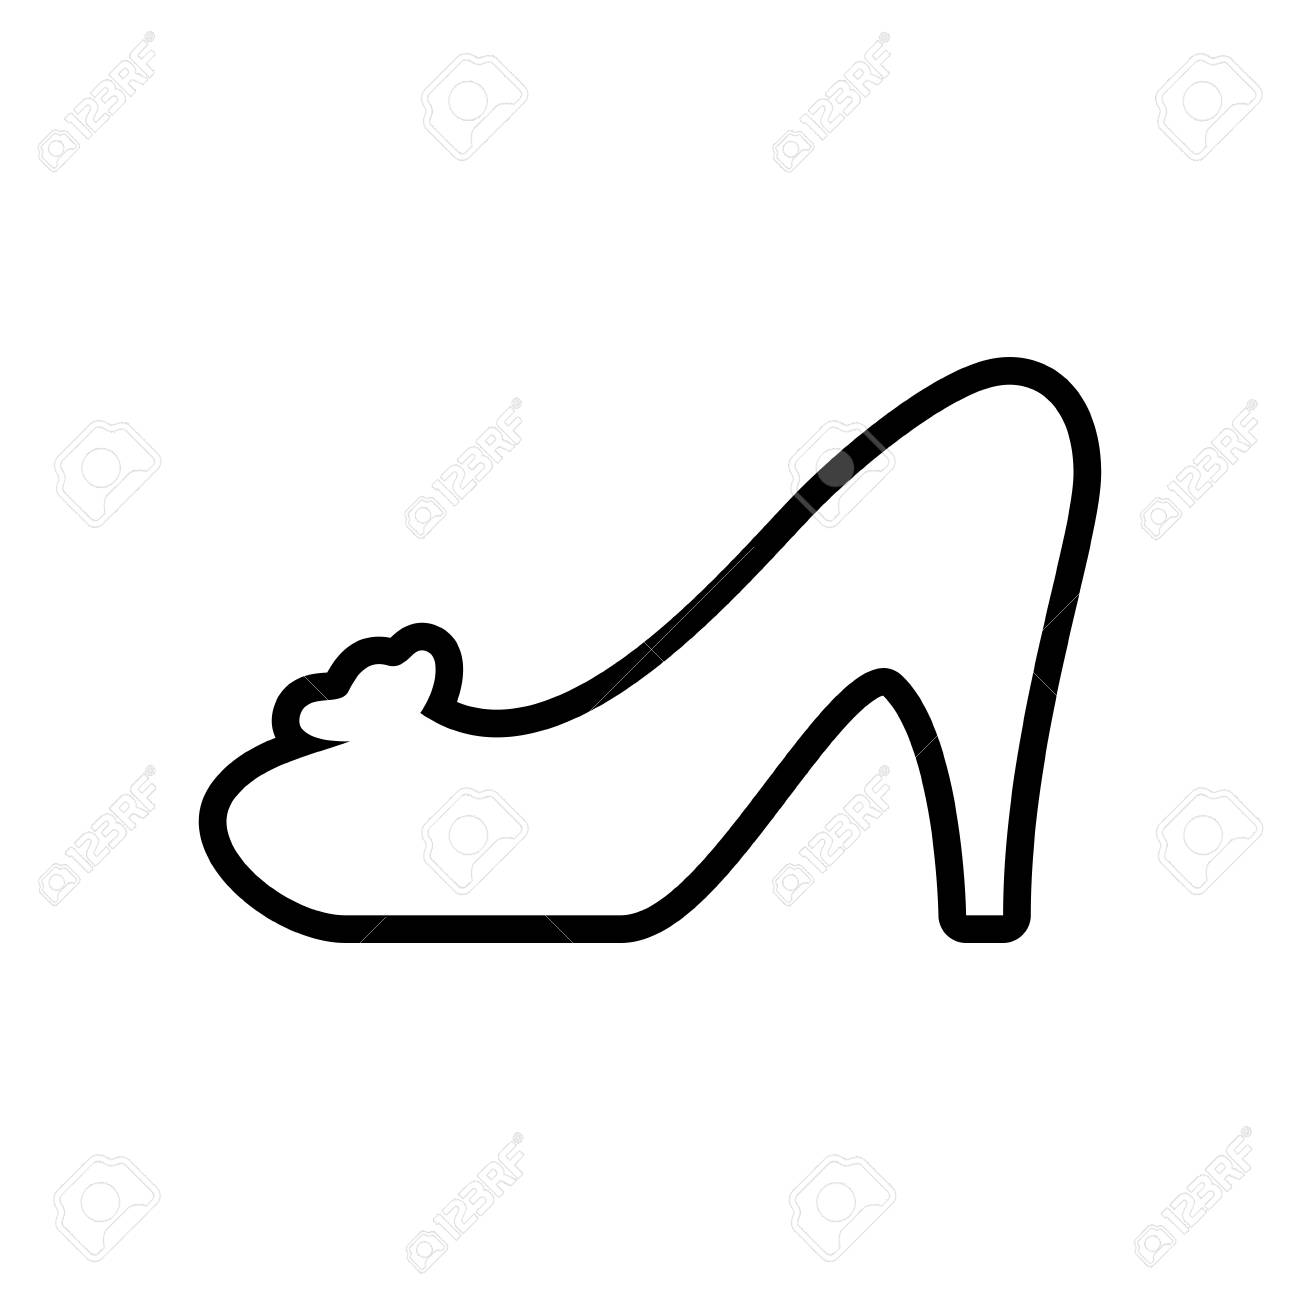 heel shoe fashion cloth icon shopping commerce concept isolated rh 123rf com Vector Graphics Background Vector Graphics Background